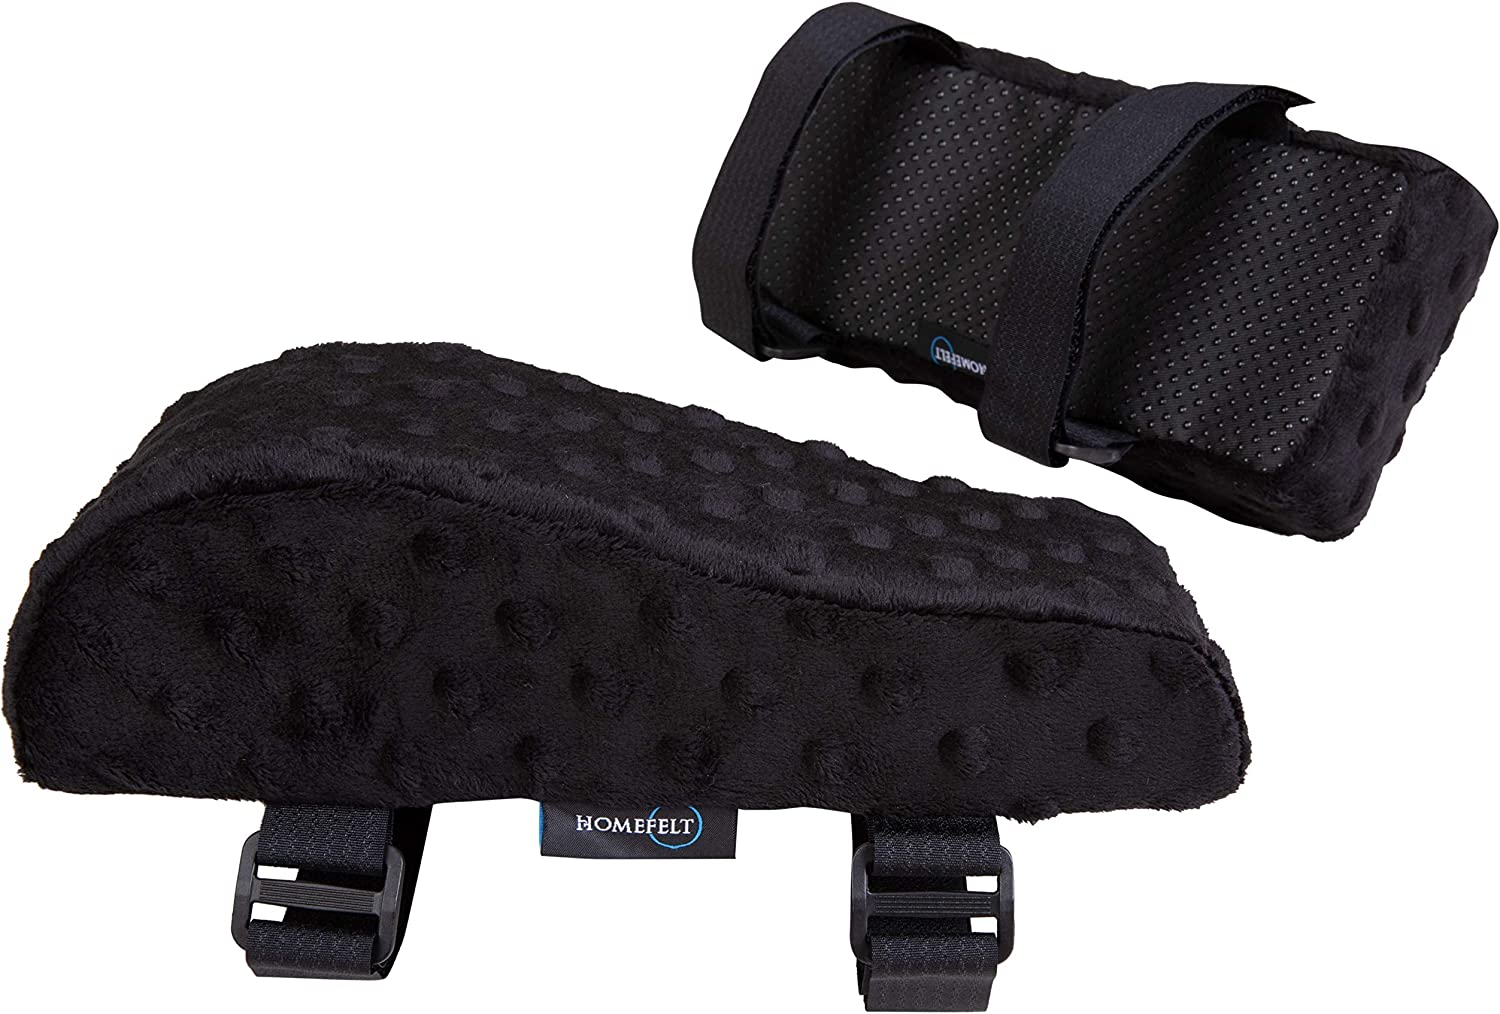 Homefelt Chair Armrest Pad - Comfy, Foam Armrest Pads for Office Chair with Soft Massage Dimples - Alleviate Pain and Stress in Elbows and Forearms - Elevated Design - Pressure Relief - 2 Pads